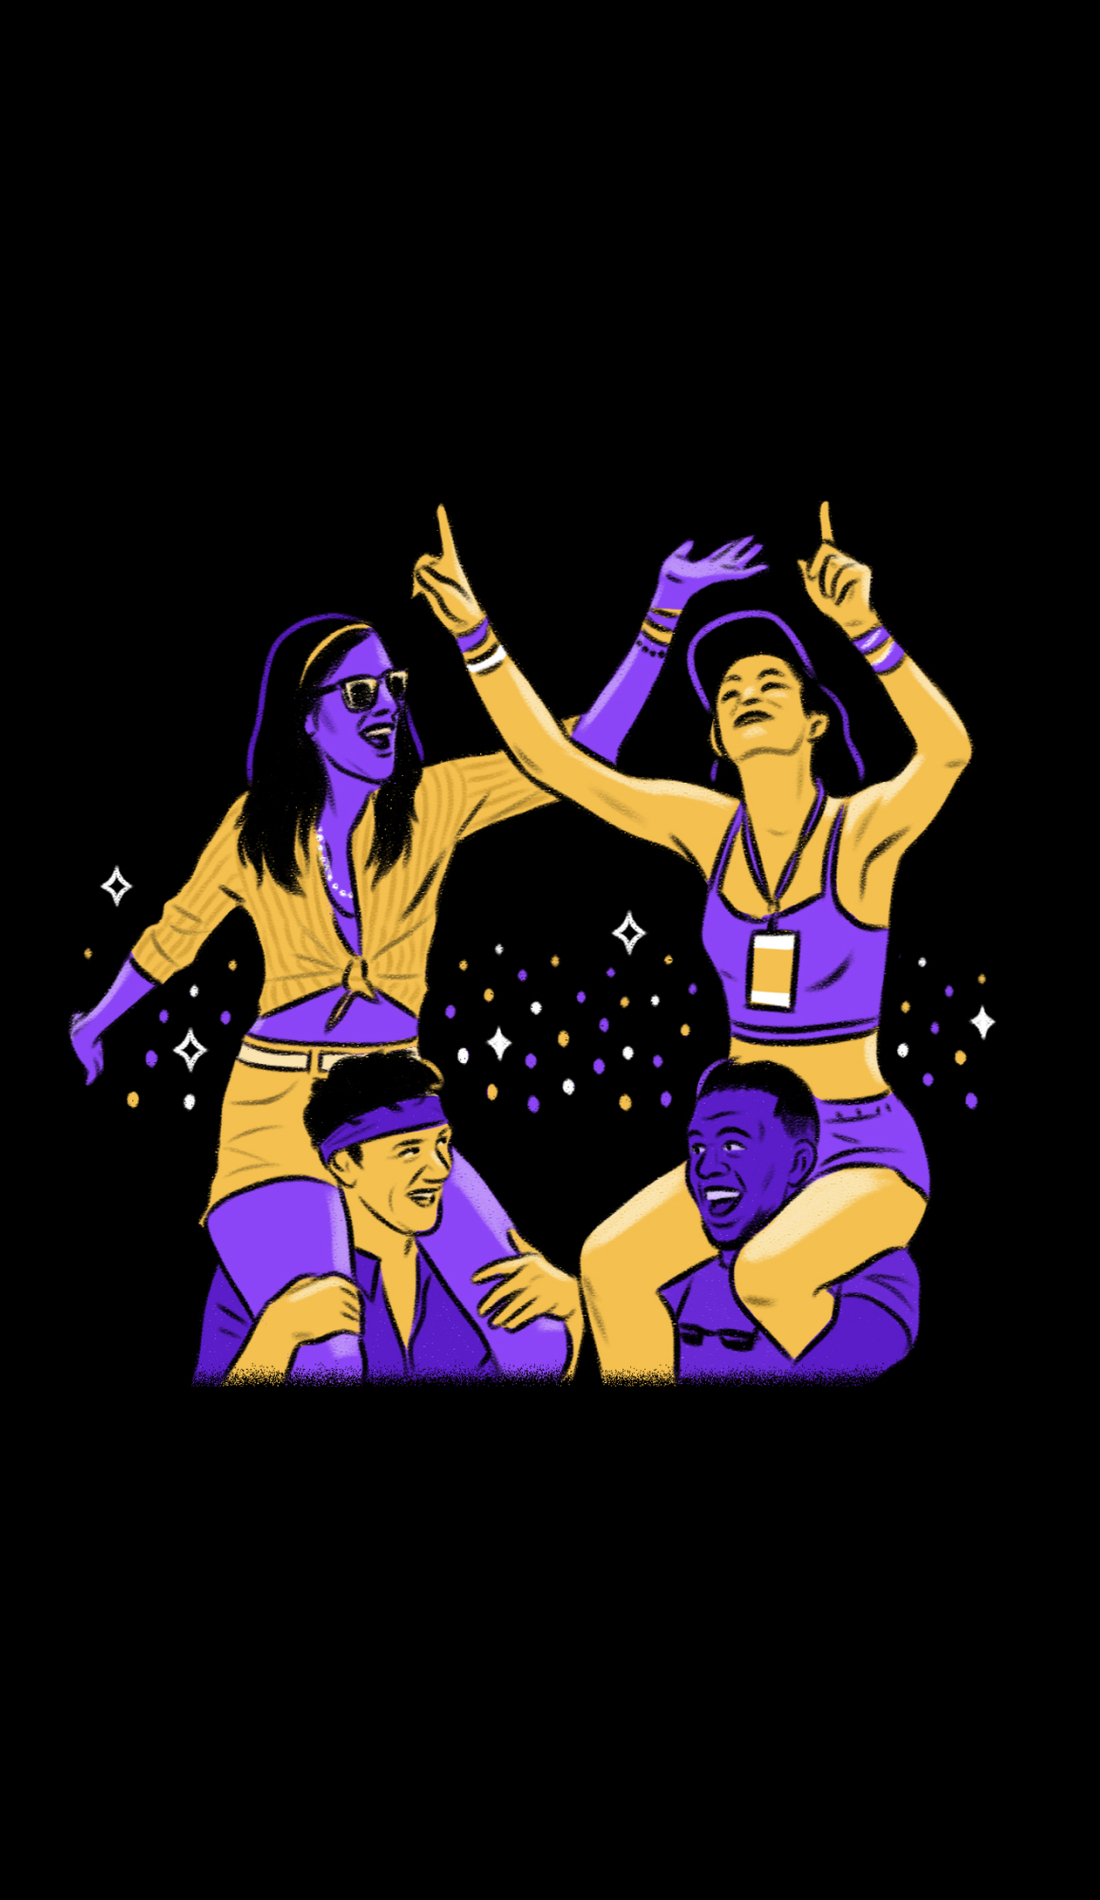 A Electric Daisy Carnival live event